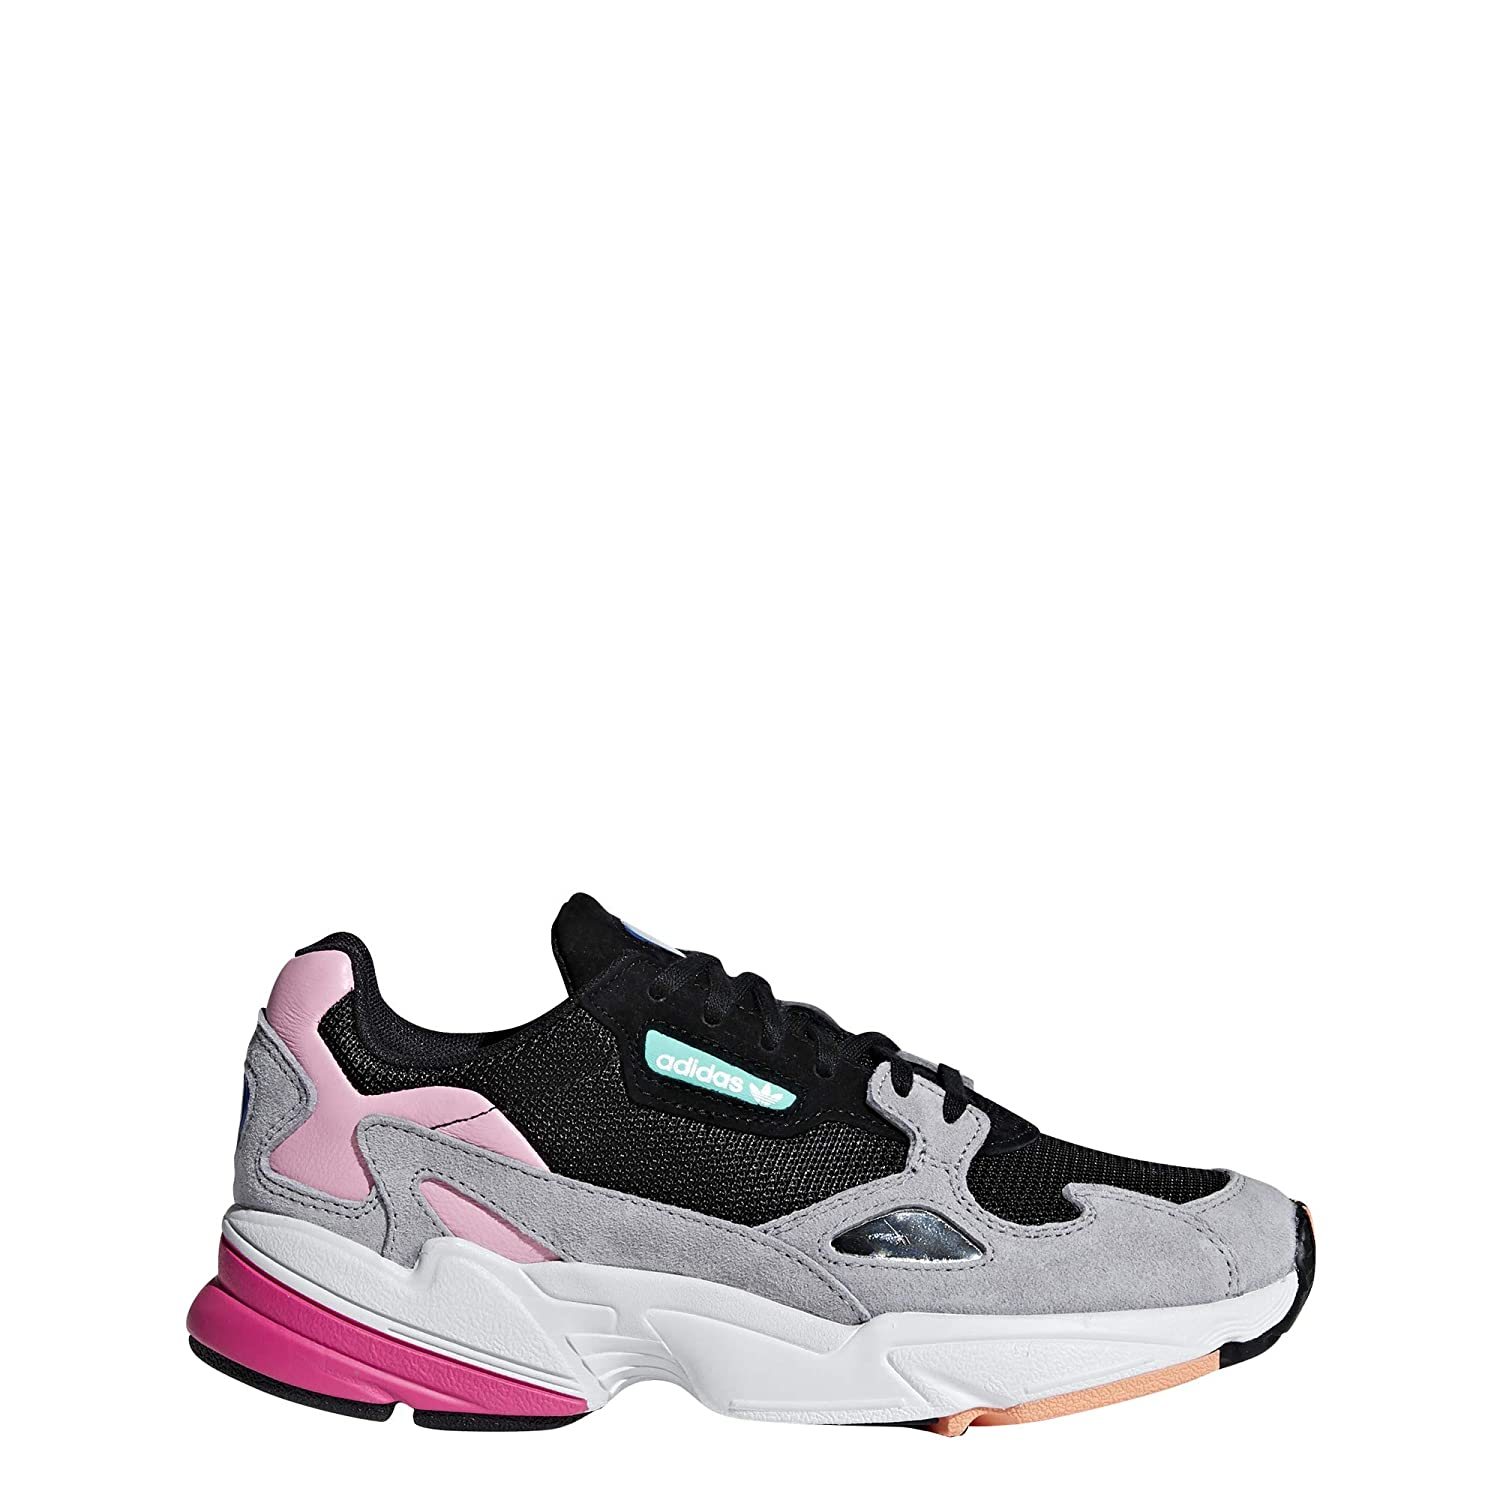 new arrival 9ef84 5b225 Amazon.com  adidas Originals Falcon Shoe - Womens Casual  Fashion  Sneakers